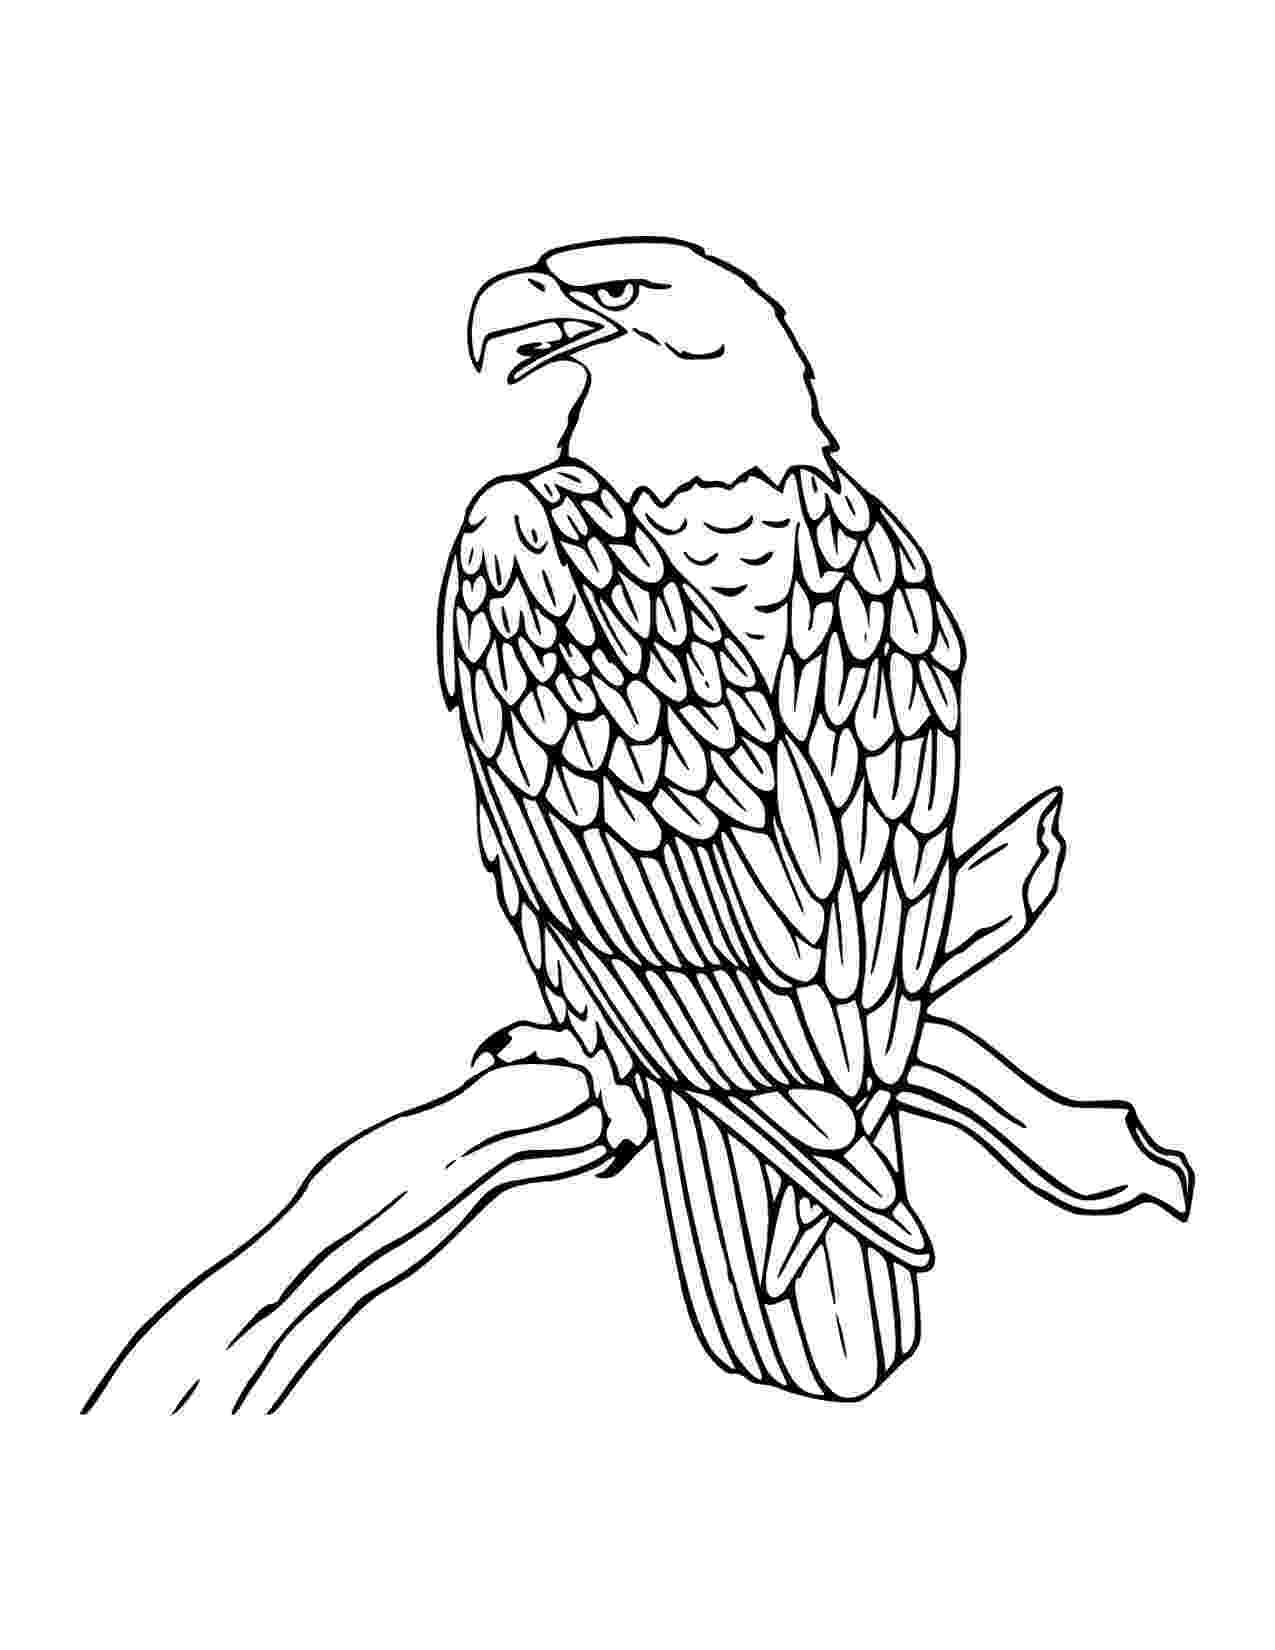 coloring pages of eagles free eagle coloring pages coloring of pages eagles